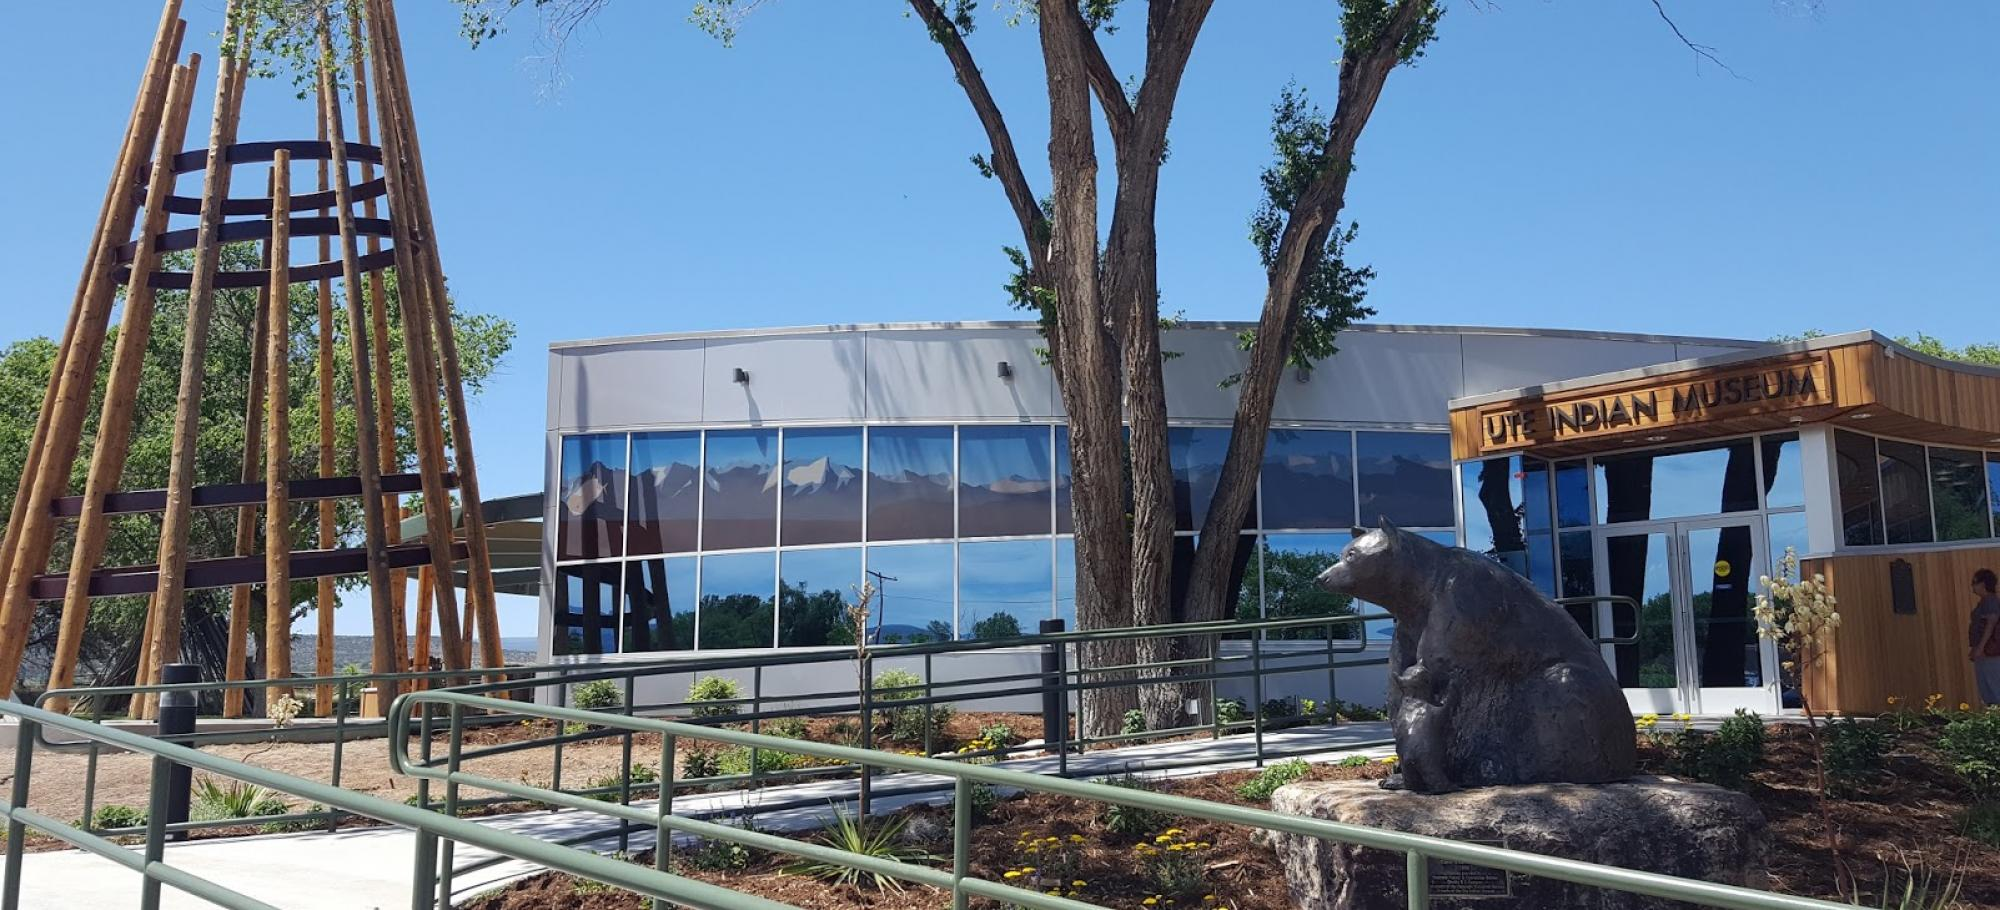 Welcome Our New Friends: Ute Indian Museum in Montrose